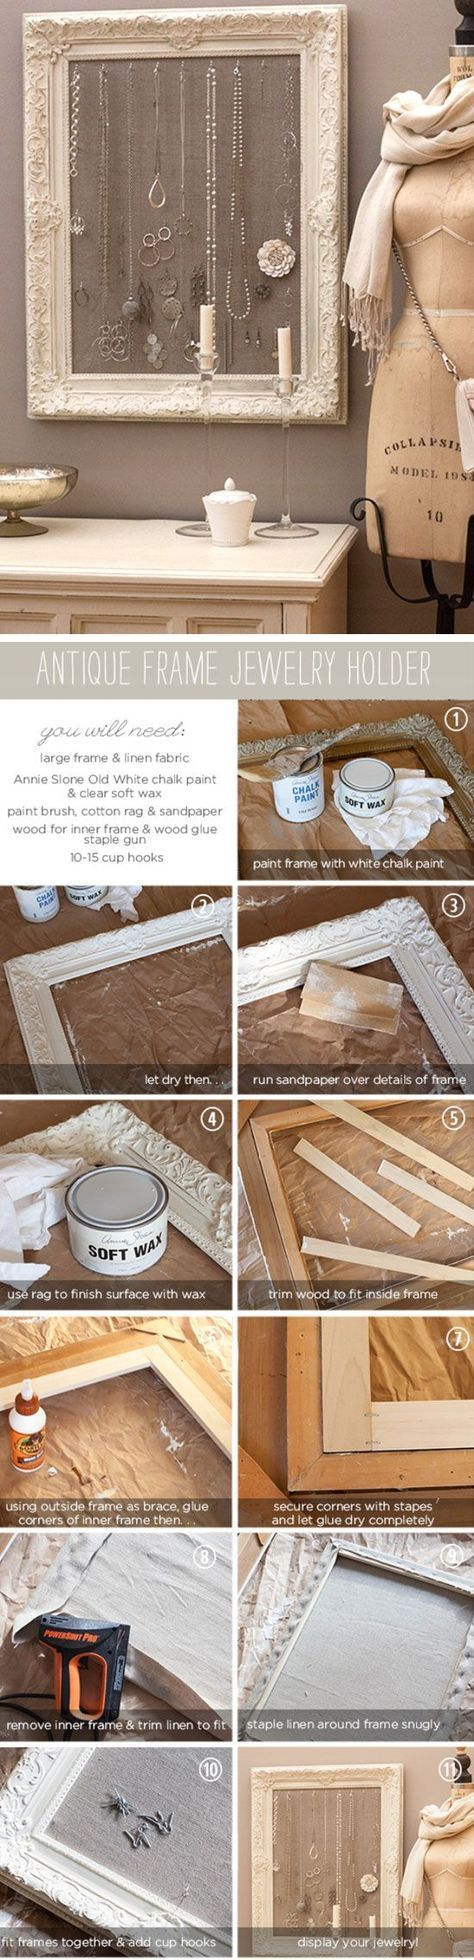 DIY Antique Frame Jewelry Holder   Click Pic for 20 Dollar Store Crafts for Home Decor Ideas for Cheap   DIY Home Decor Hacks Tips and Tricks